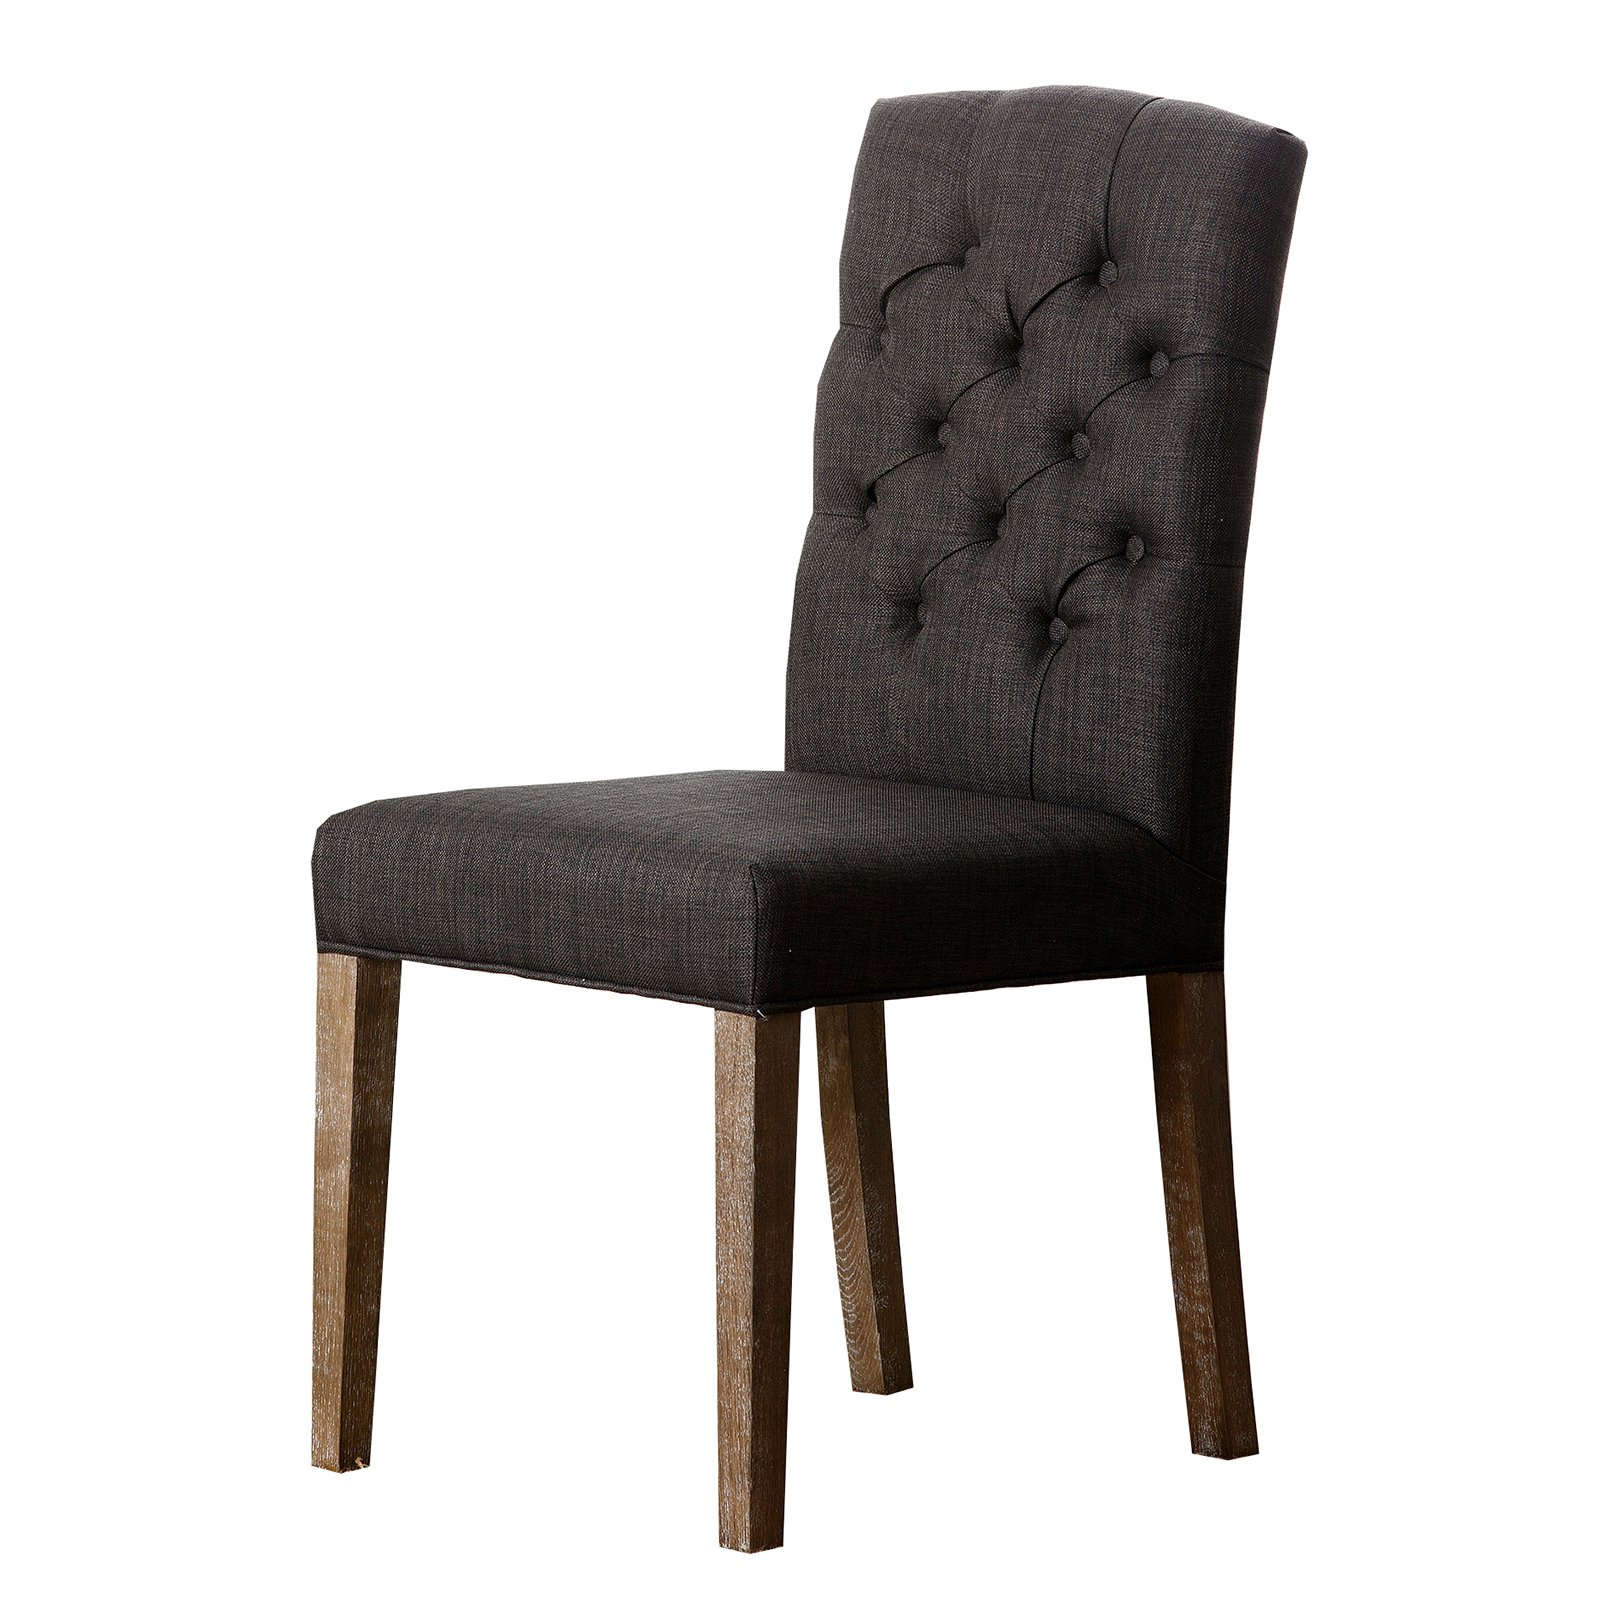 Cheap Upholstered Dining Chairs Upholstered Dining Room Chairs Upholstered Dining Room Chairs